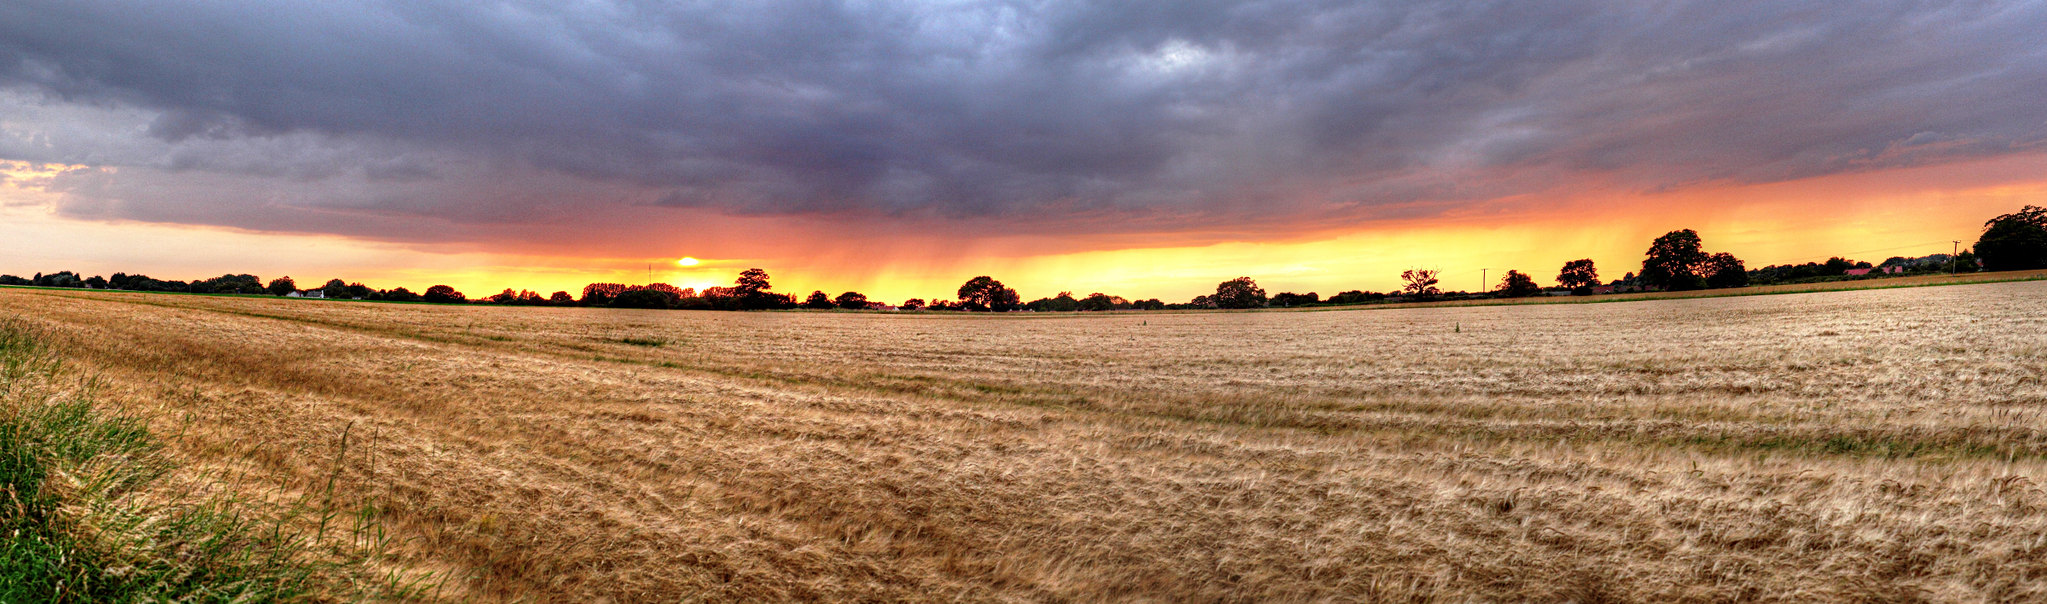 A panorama of the sunset through the storm clouds over the Essex countryside - photo of fields near the Essex Lion, Clacton